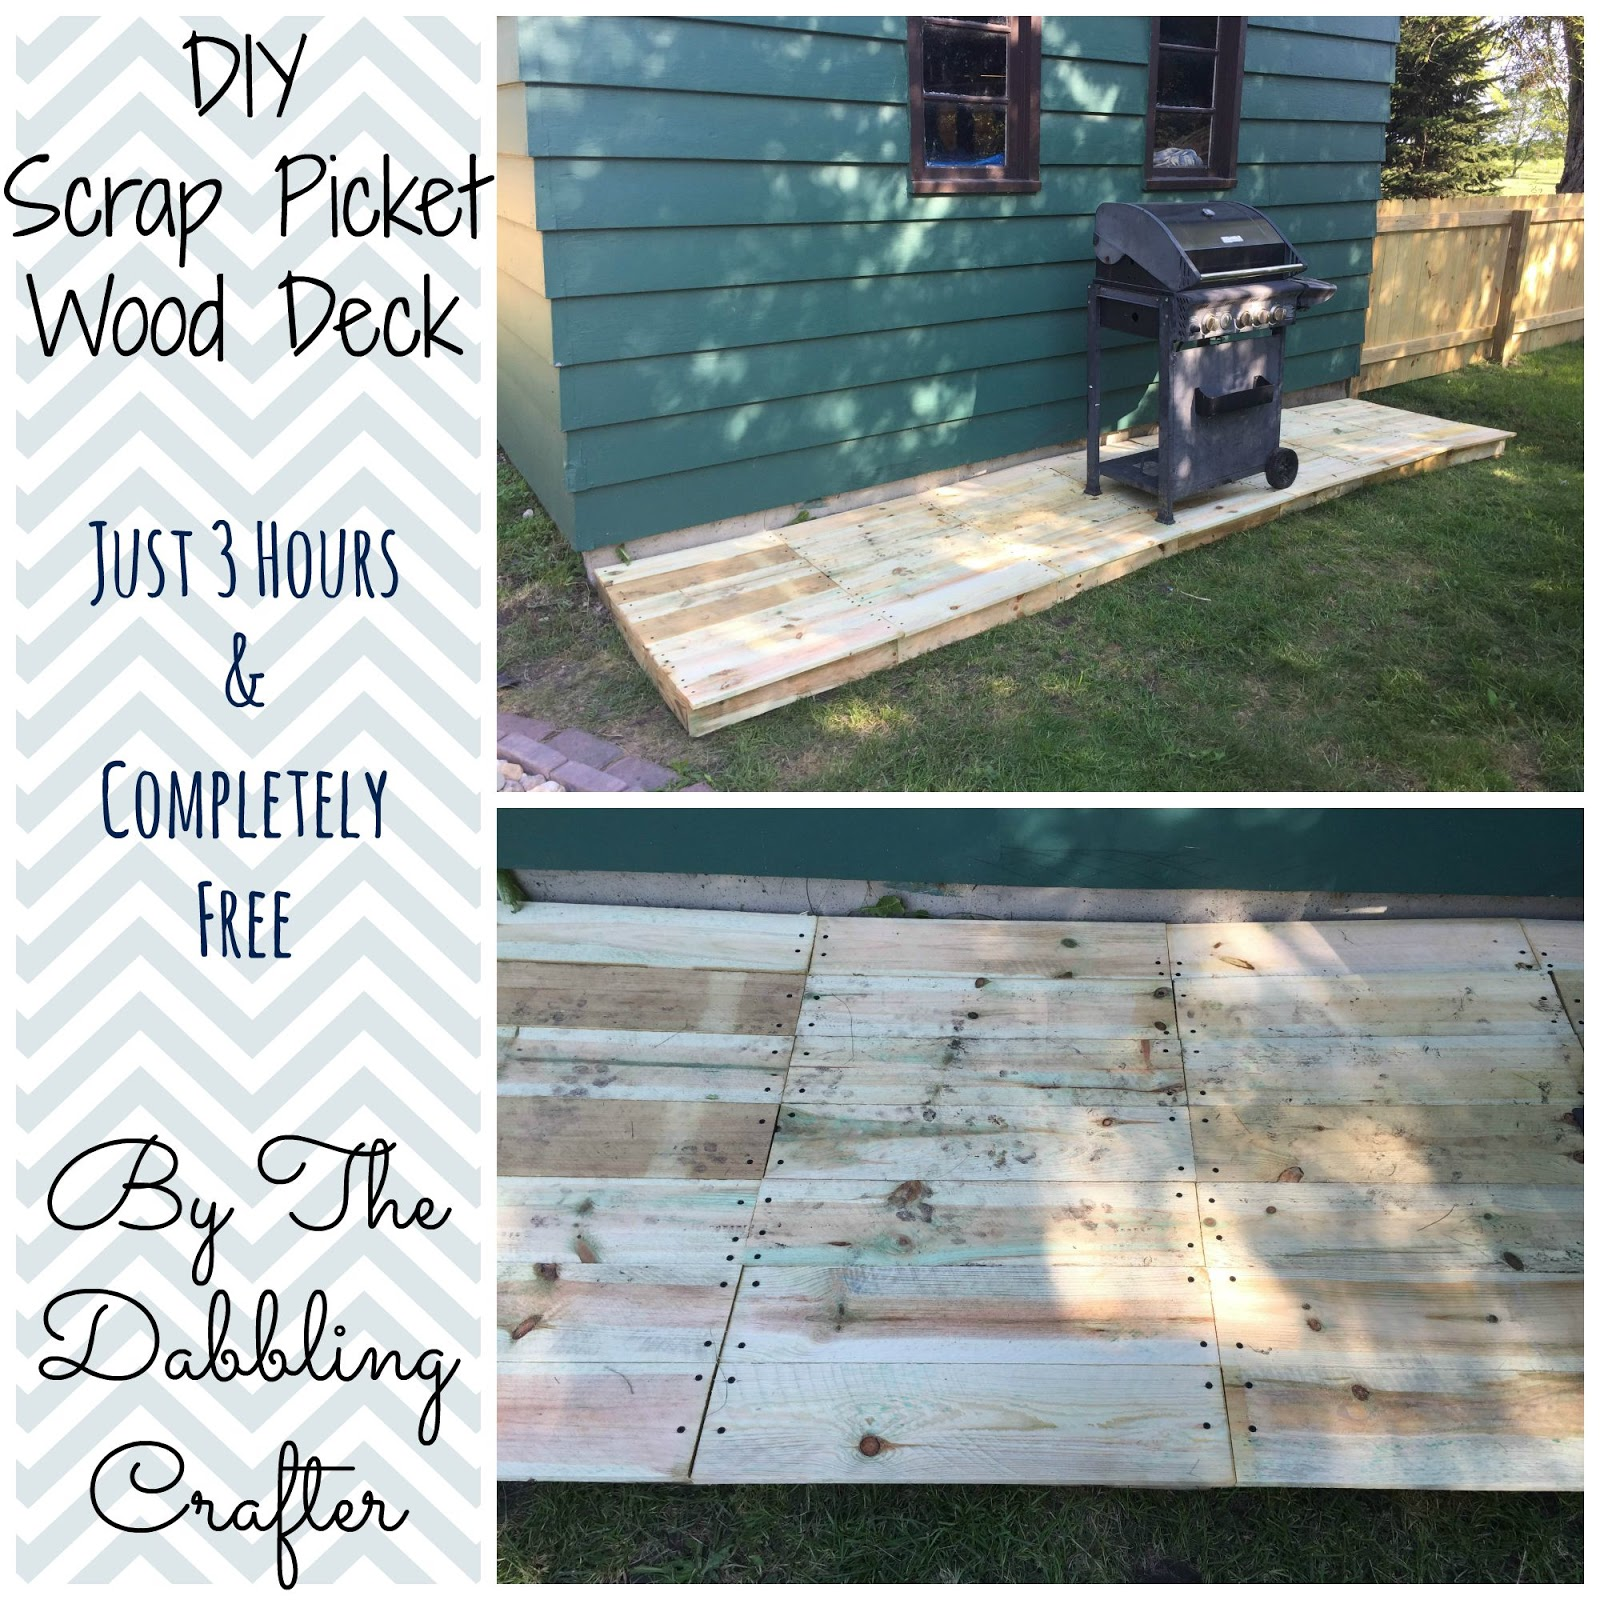 The Dabbling Crafter Diy Sunday Scrap Wood Deck